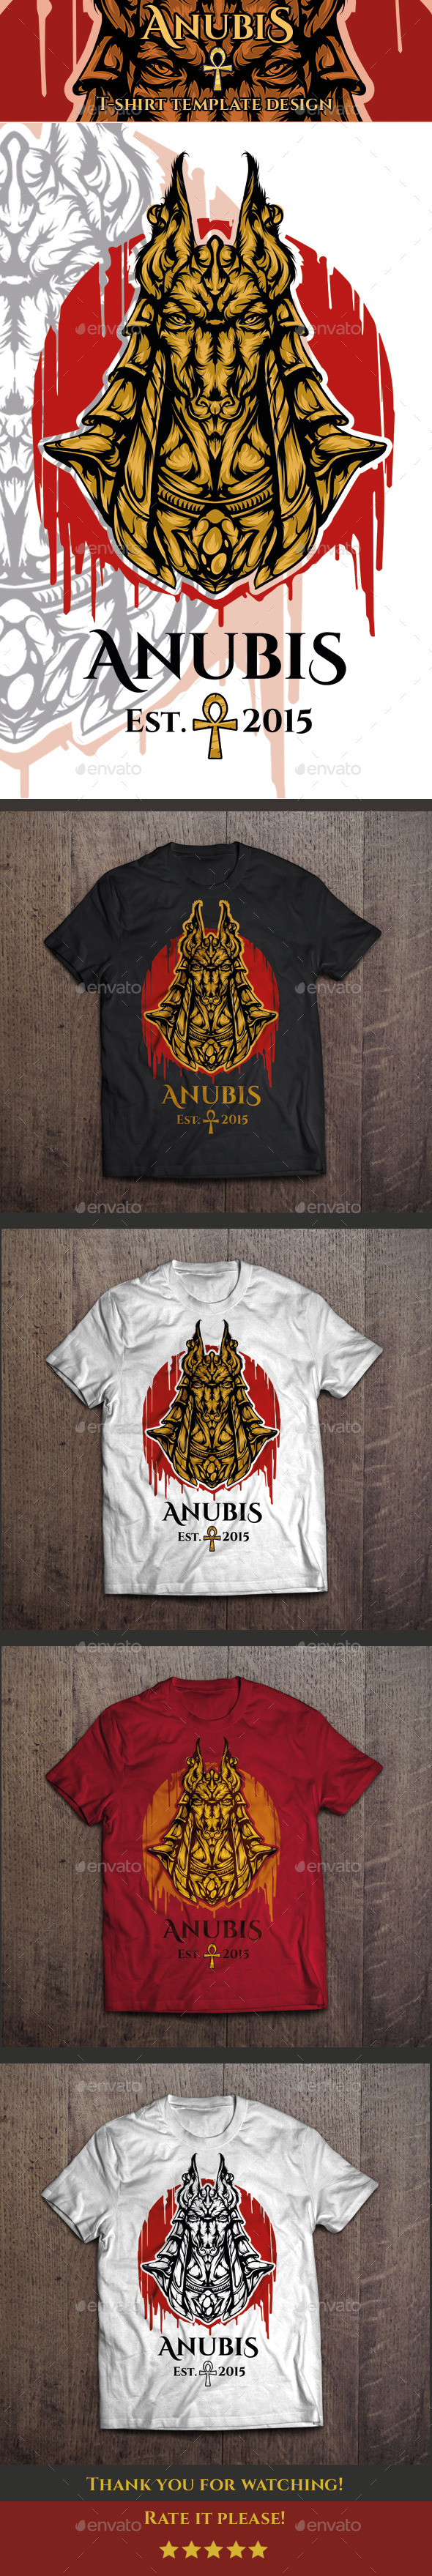 Anubis T-shirt Template - Clean Designs